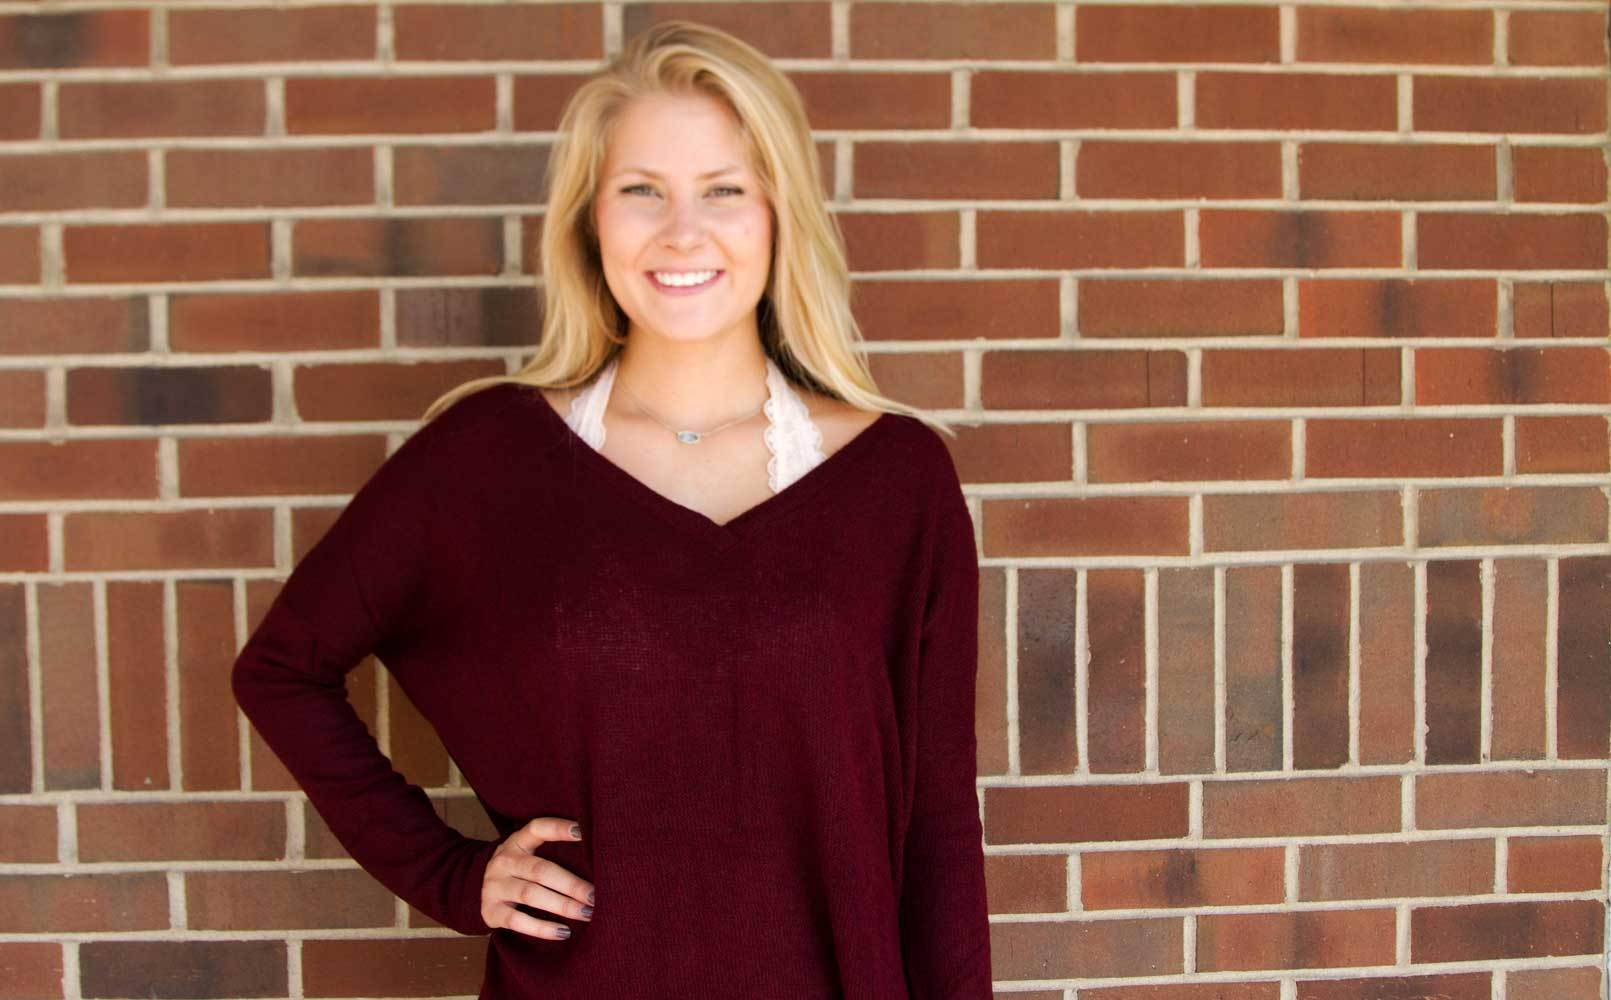 Burgundy Piko with bralette